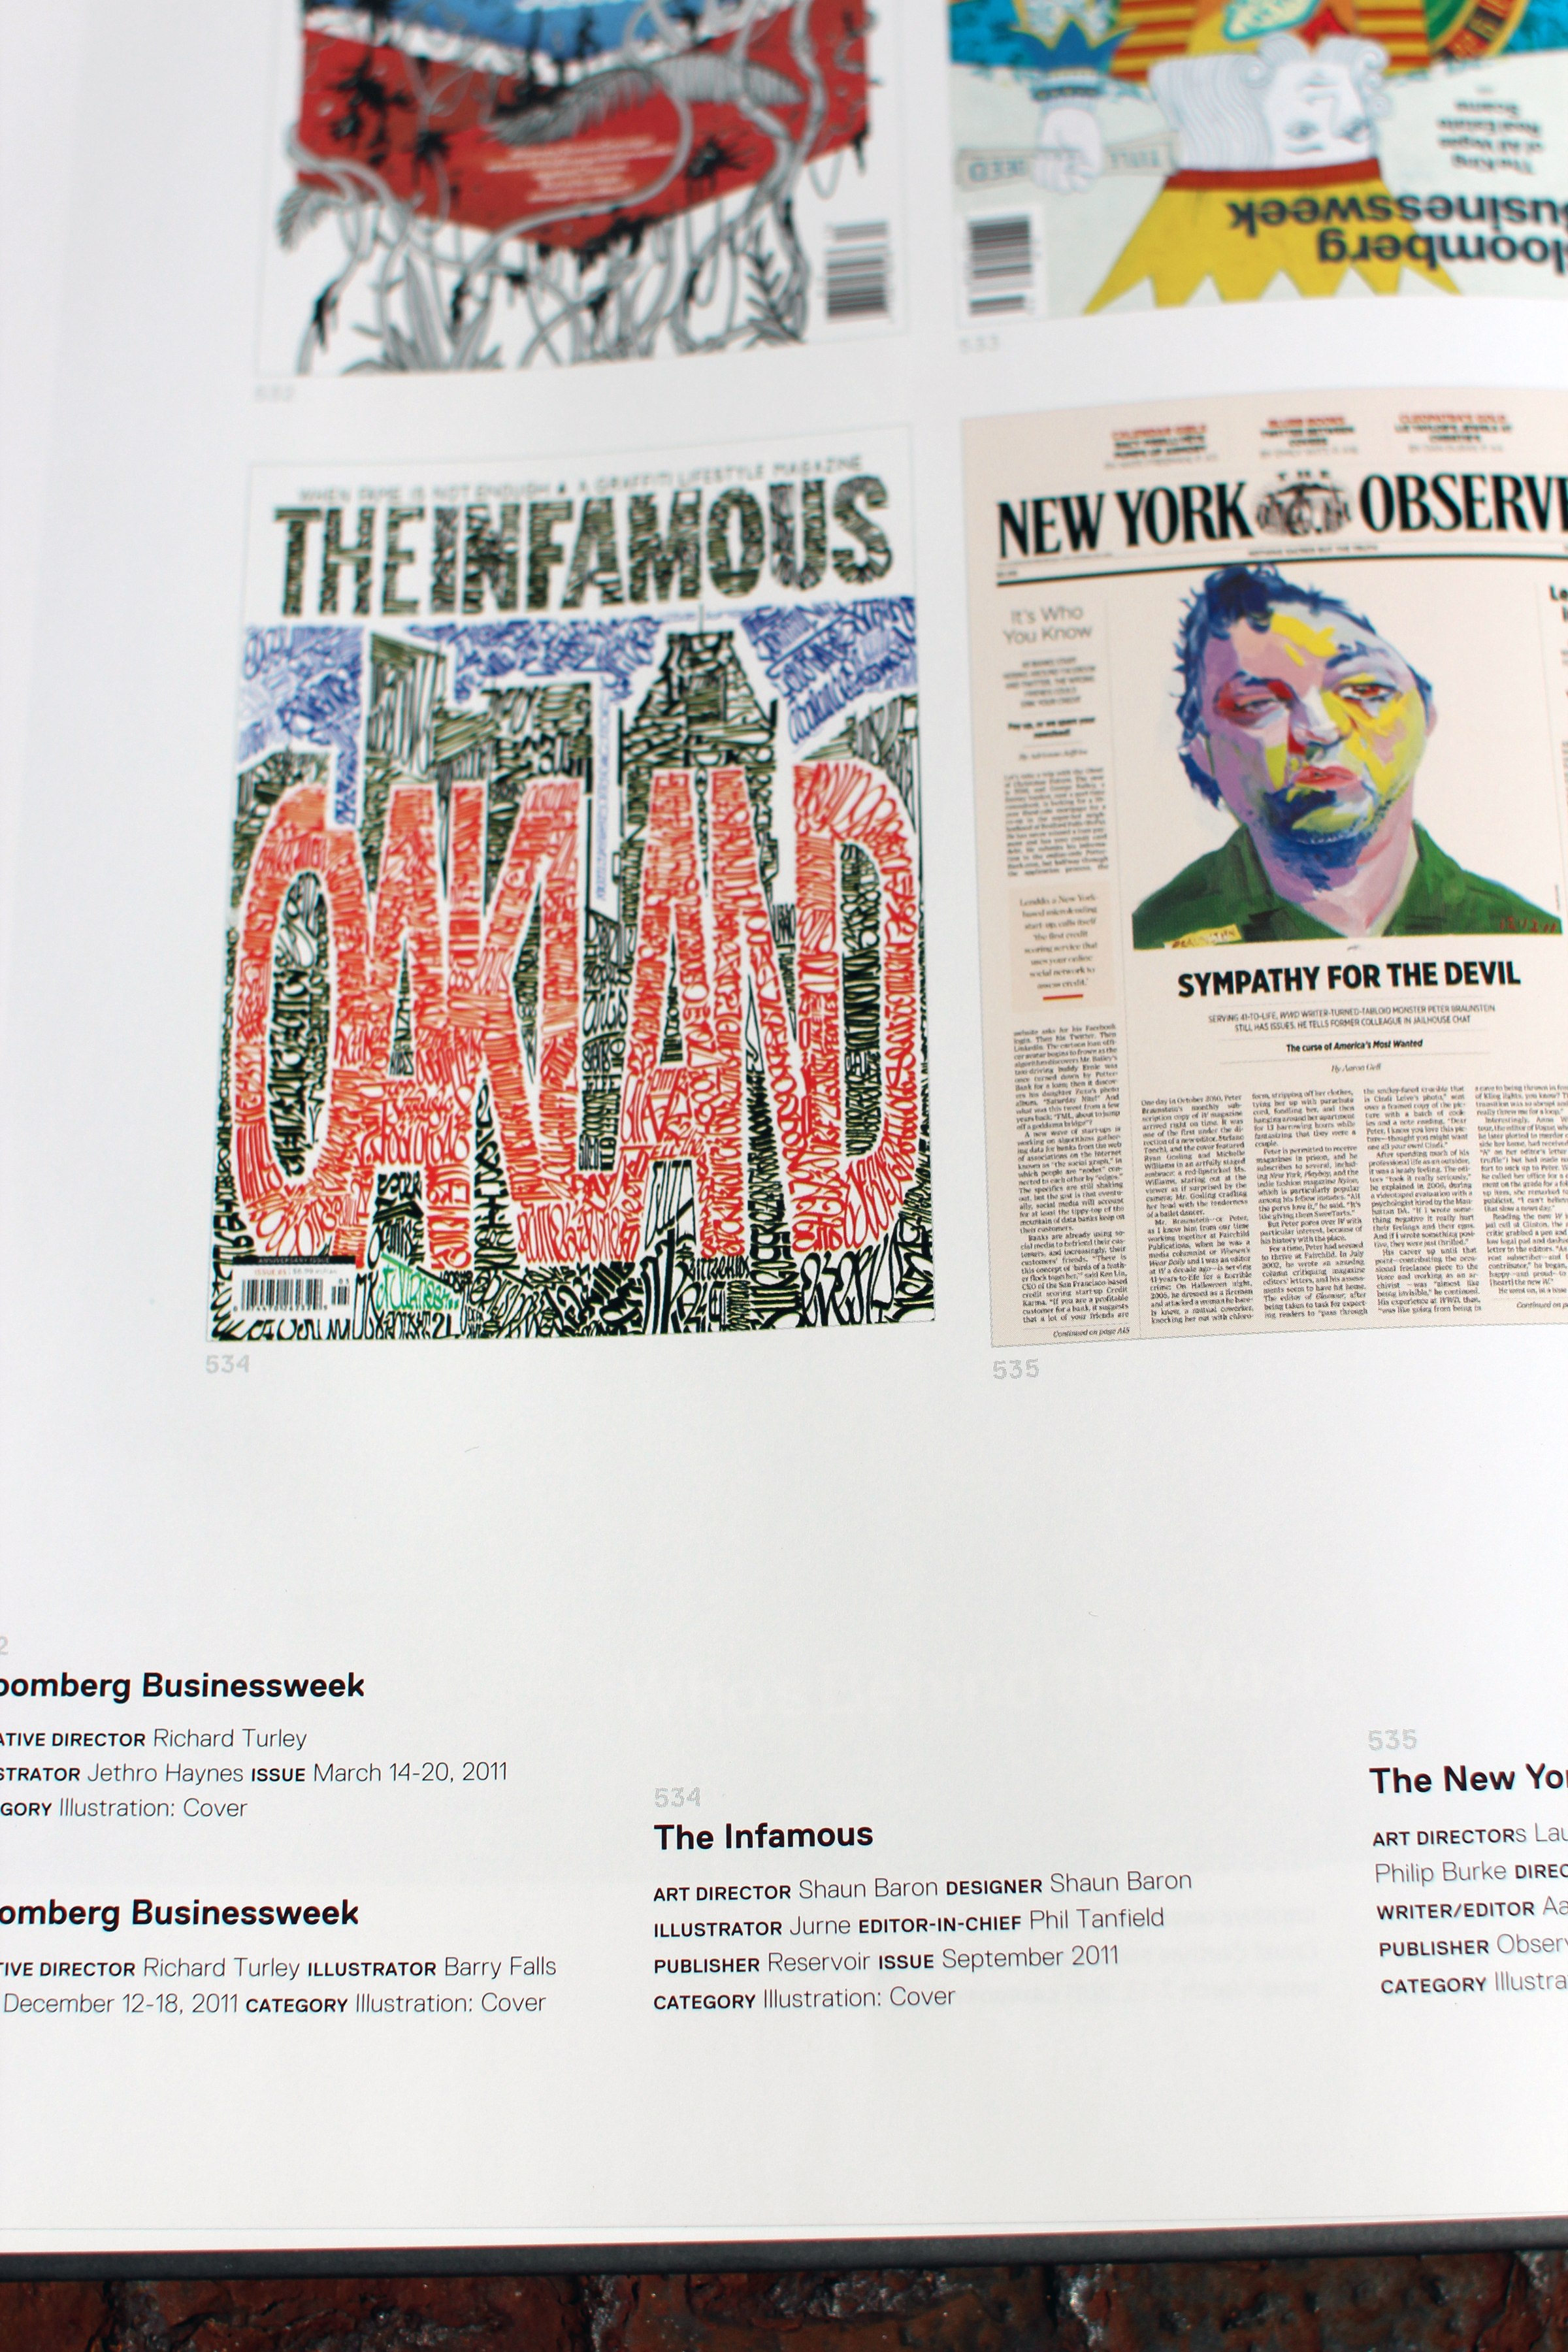 Photo of a layout from the Society of Publication Designer's 47th Annual, showcasing The Infamous magazine.